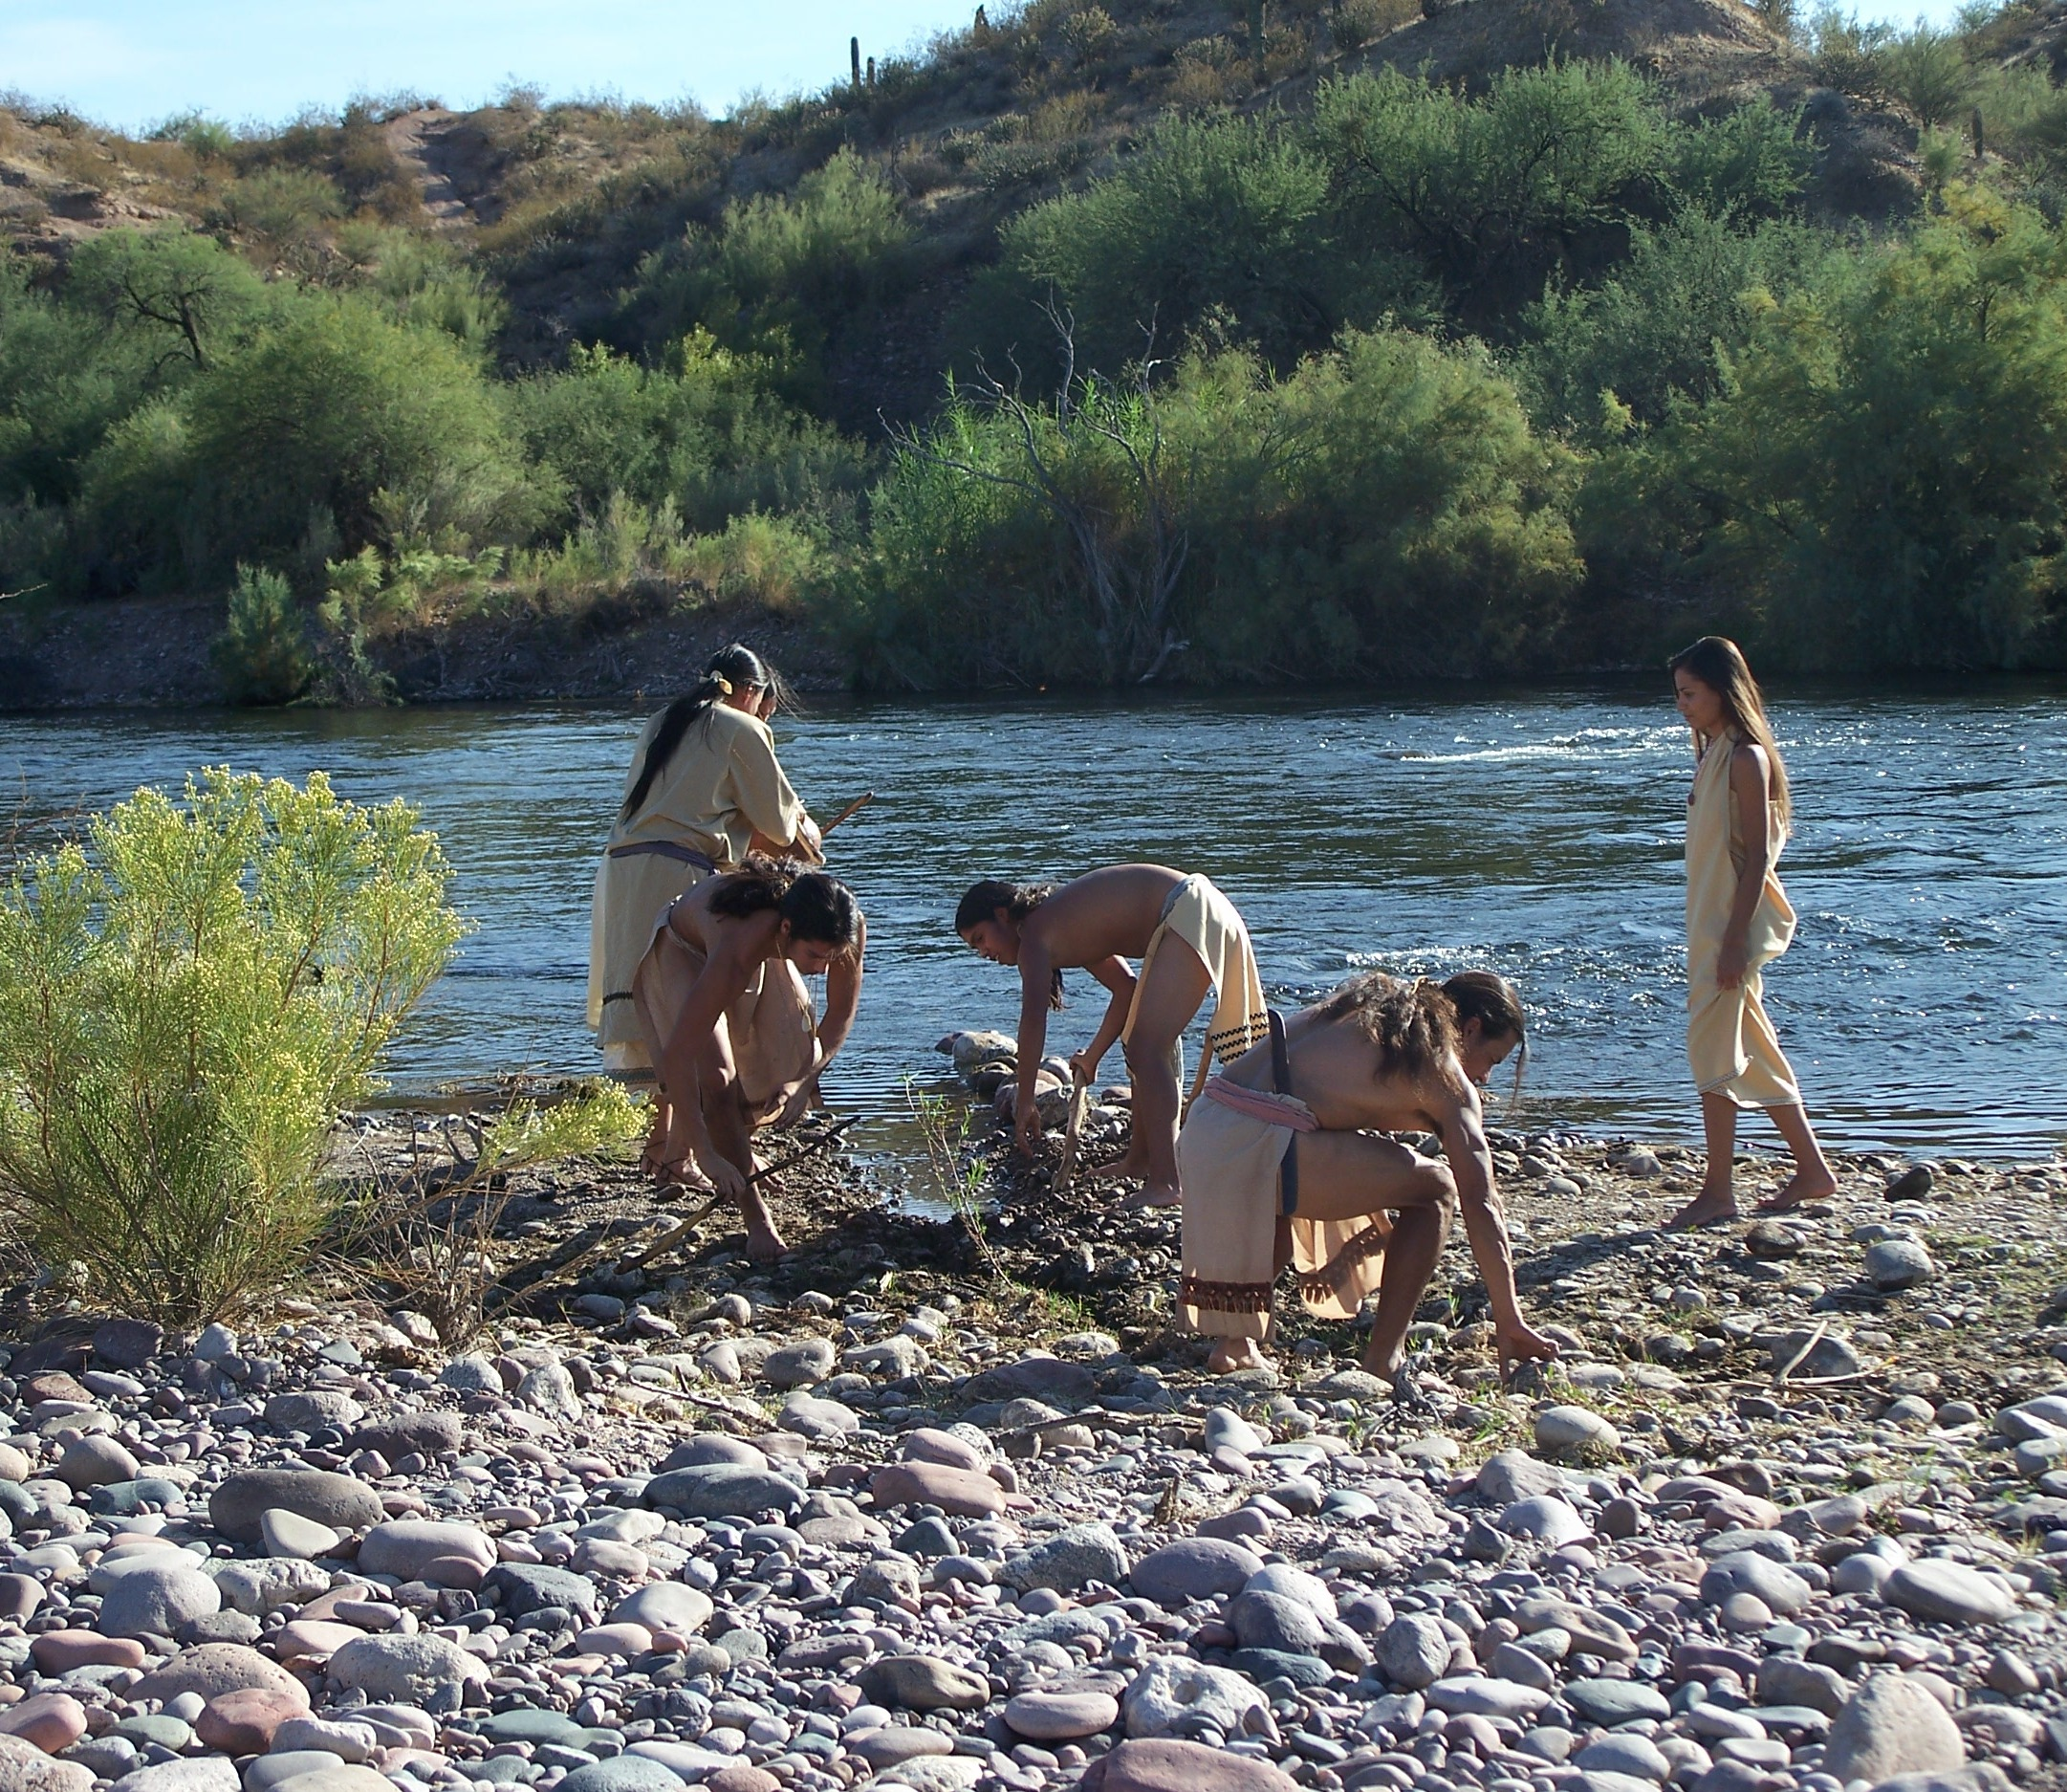 costumed actors are using traditional tools to start a canal at the Salt River